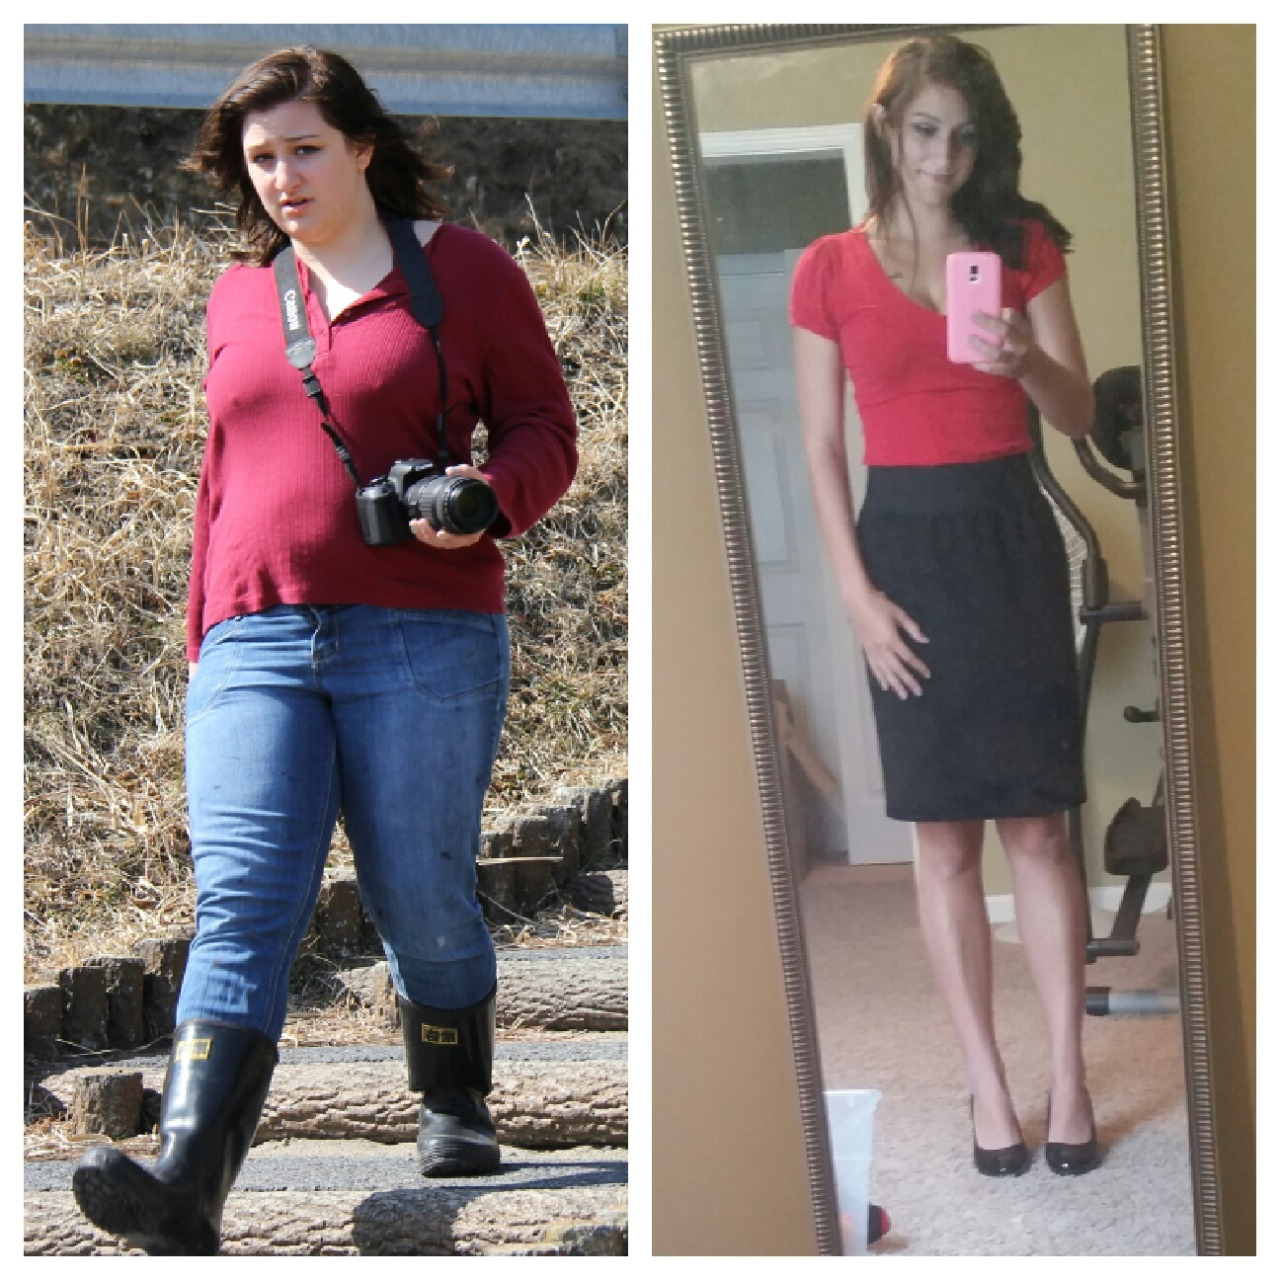 5 Ft 3 In 195 Pounds Vs 132 Pounds Took A